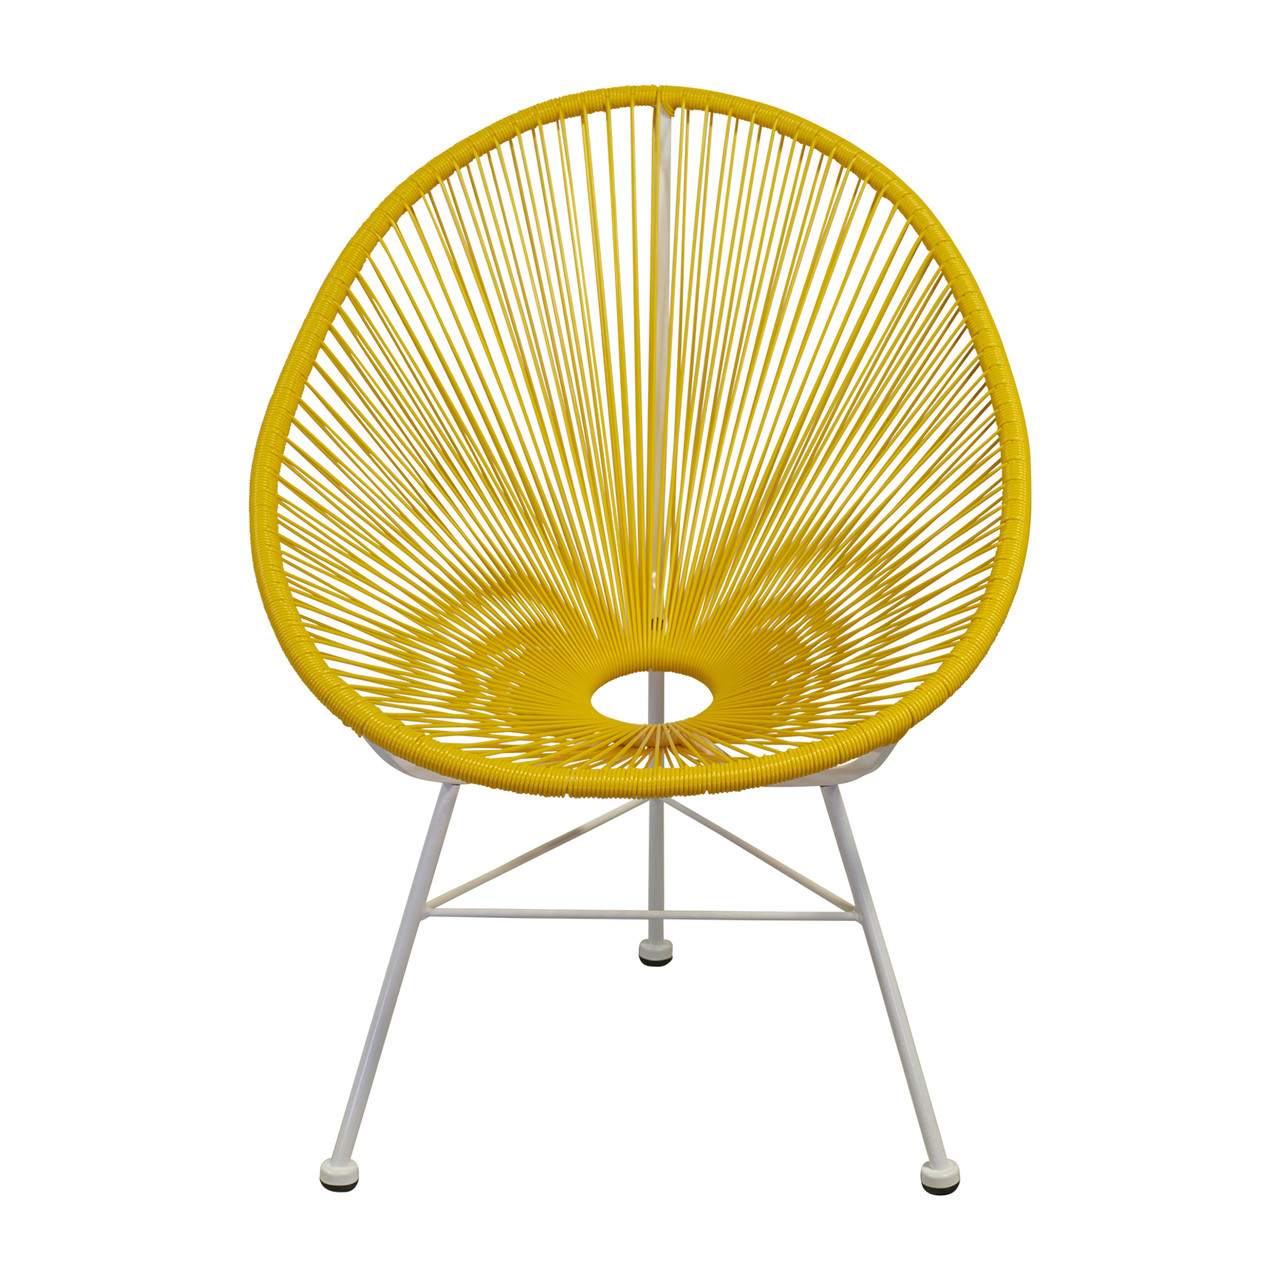 Pleasing Acapulco Indoor Outdoor Lounge Chair Yellow Weave On White Frame Gmtry Best Dining Table And Chair Ideas Images Gmtryco